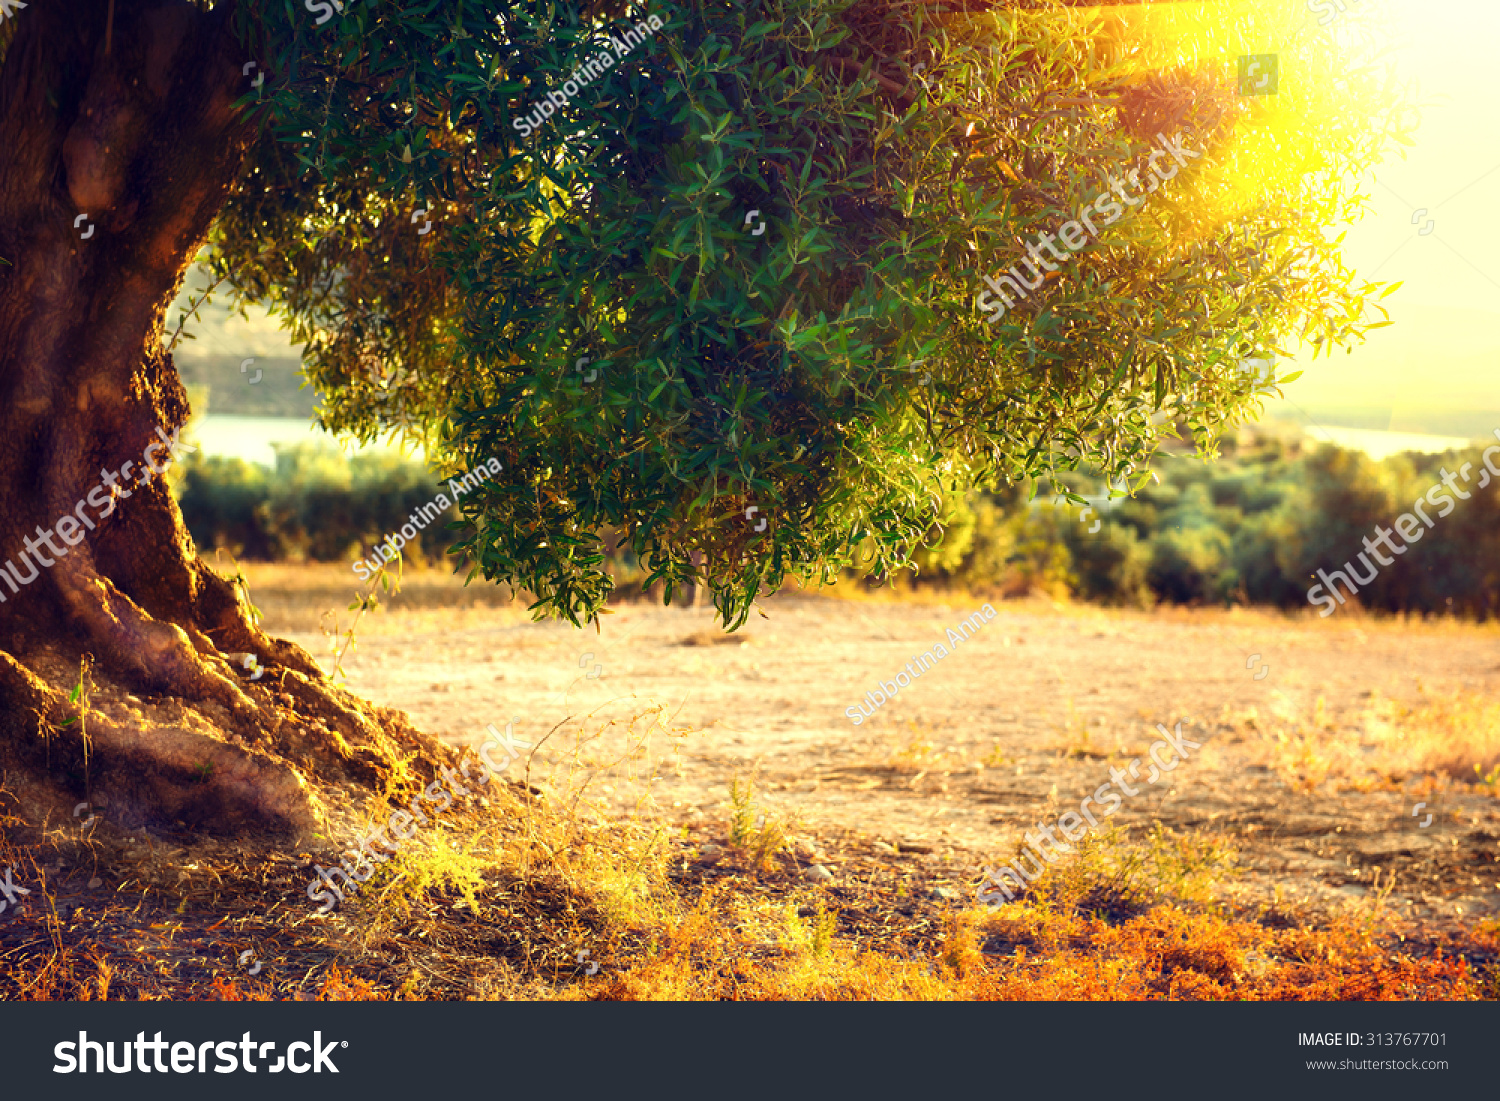 Olive trees Plantation of olive trees at sunset Mediterranean olive field with old olive tree Vegetable produce industry Seasonal nature